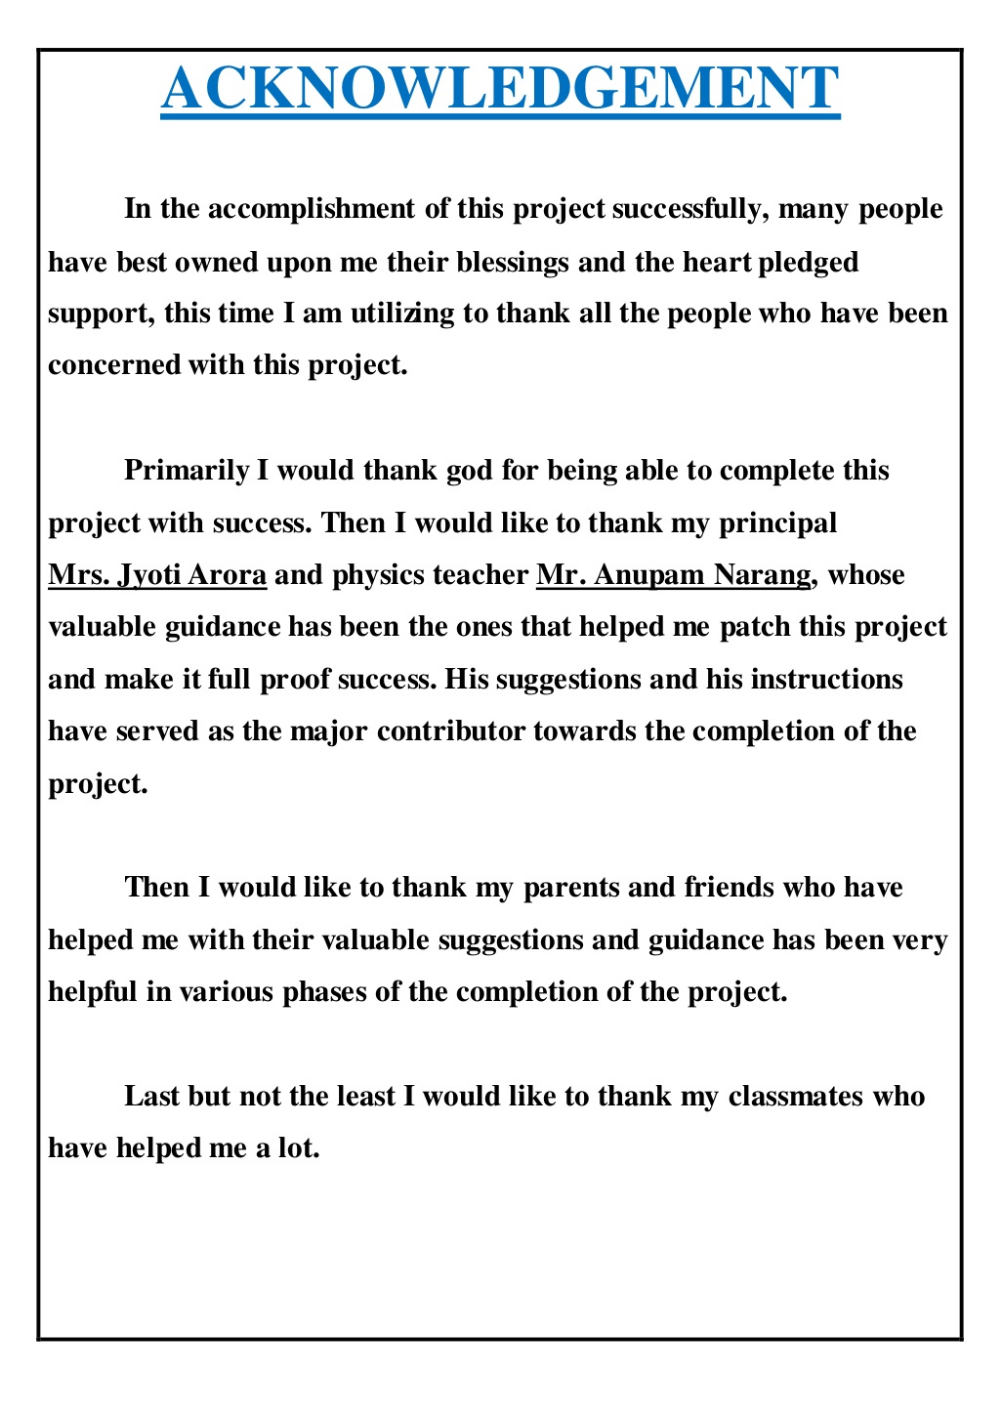 project front page  index  certificate  and acknowledgement